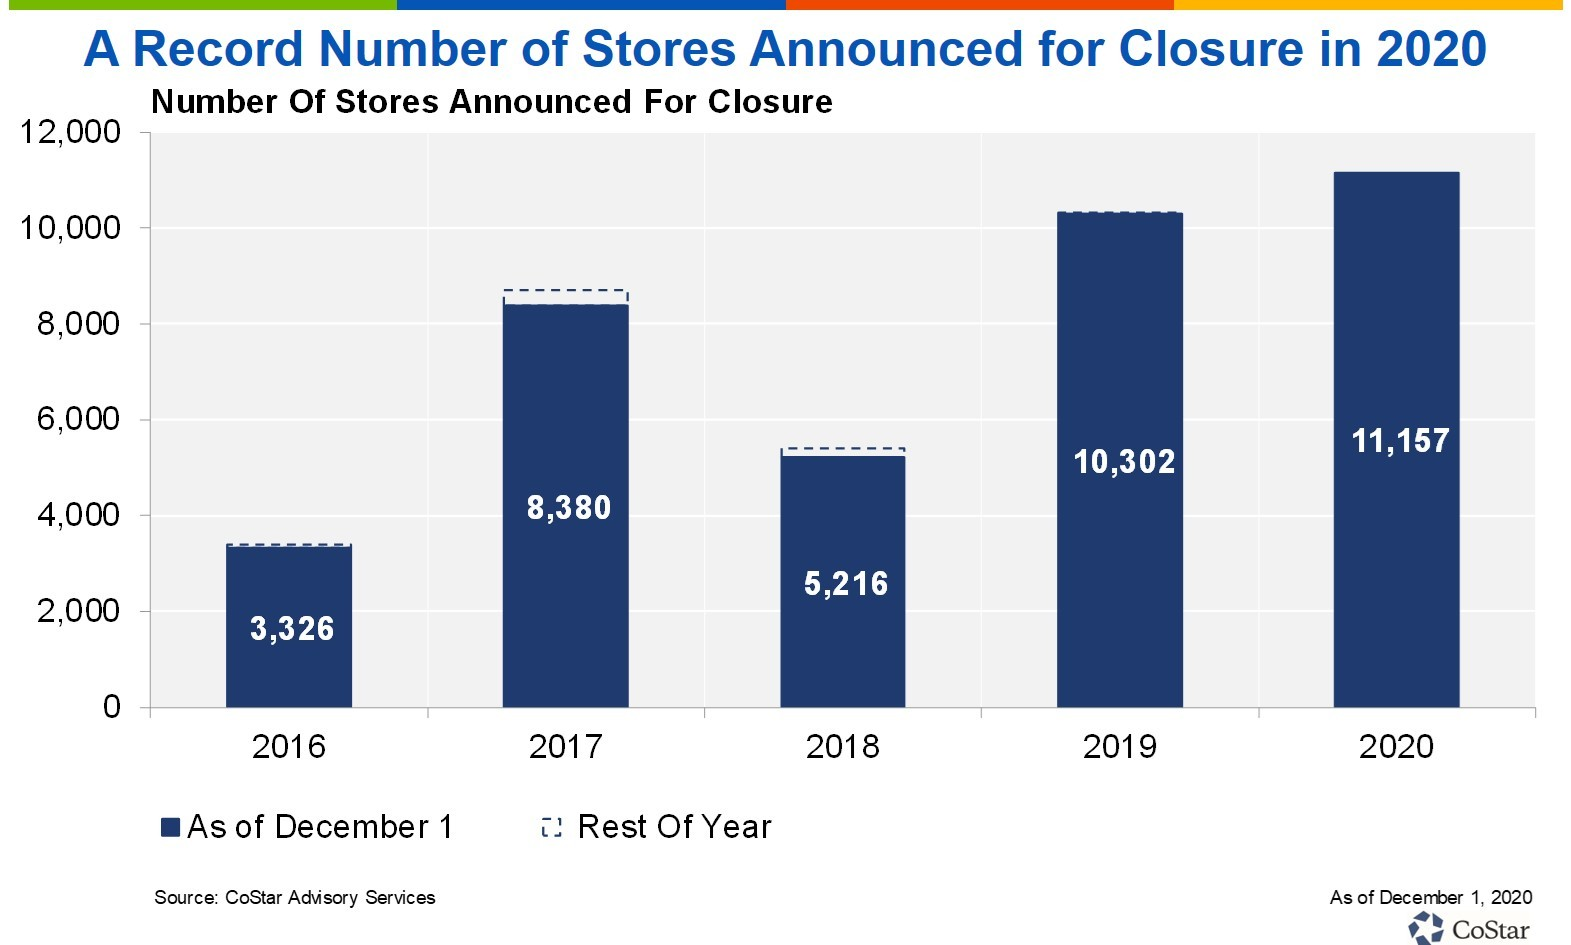 A graph showing the increase in the number of retail stores announced for closure in 2020